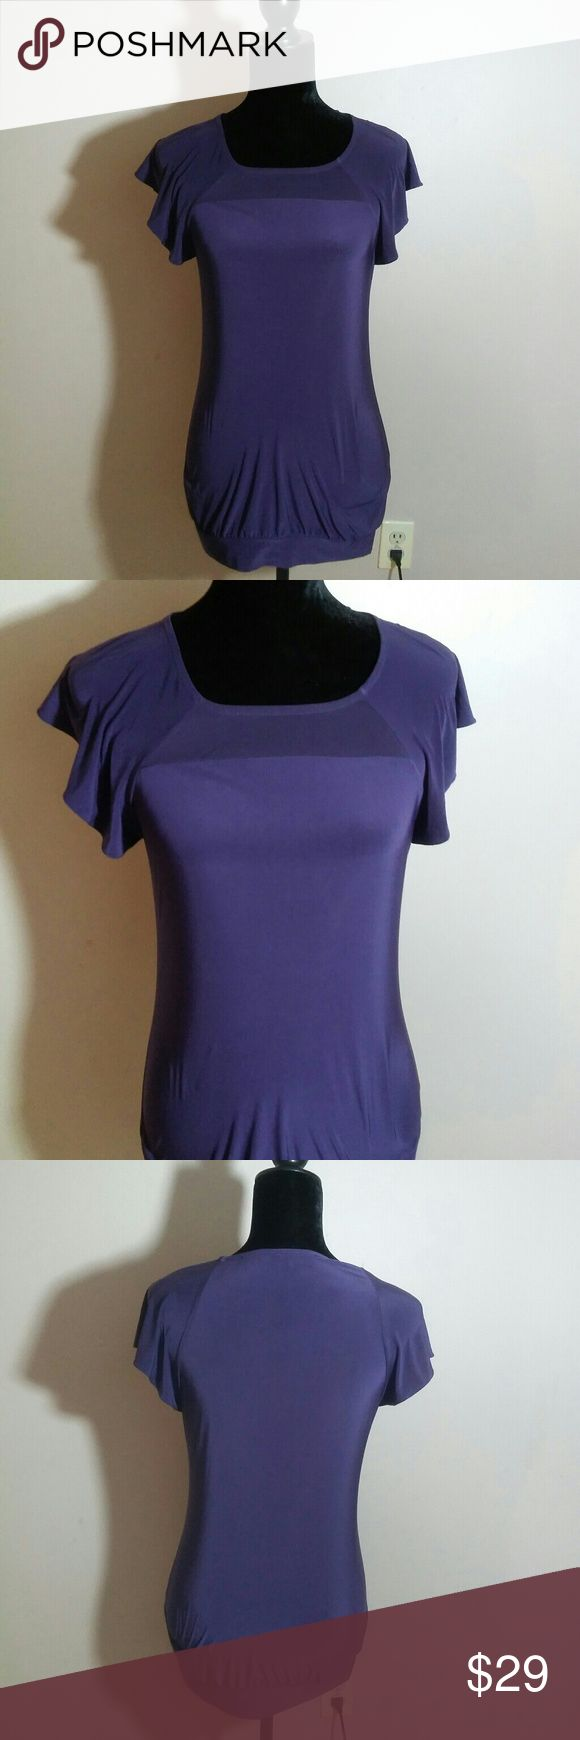 """The Limited Womens Small Cap Sleeve Top EUC Like-new condition, made in Vietnam, Body: 94% polyester and 6% spandex, Trim: 100% polyester, RN: 54874, 16"""" across and 23"""" in length The Limited Tops Blouses"""